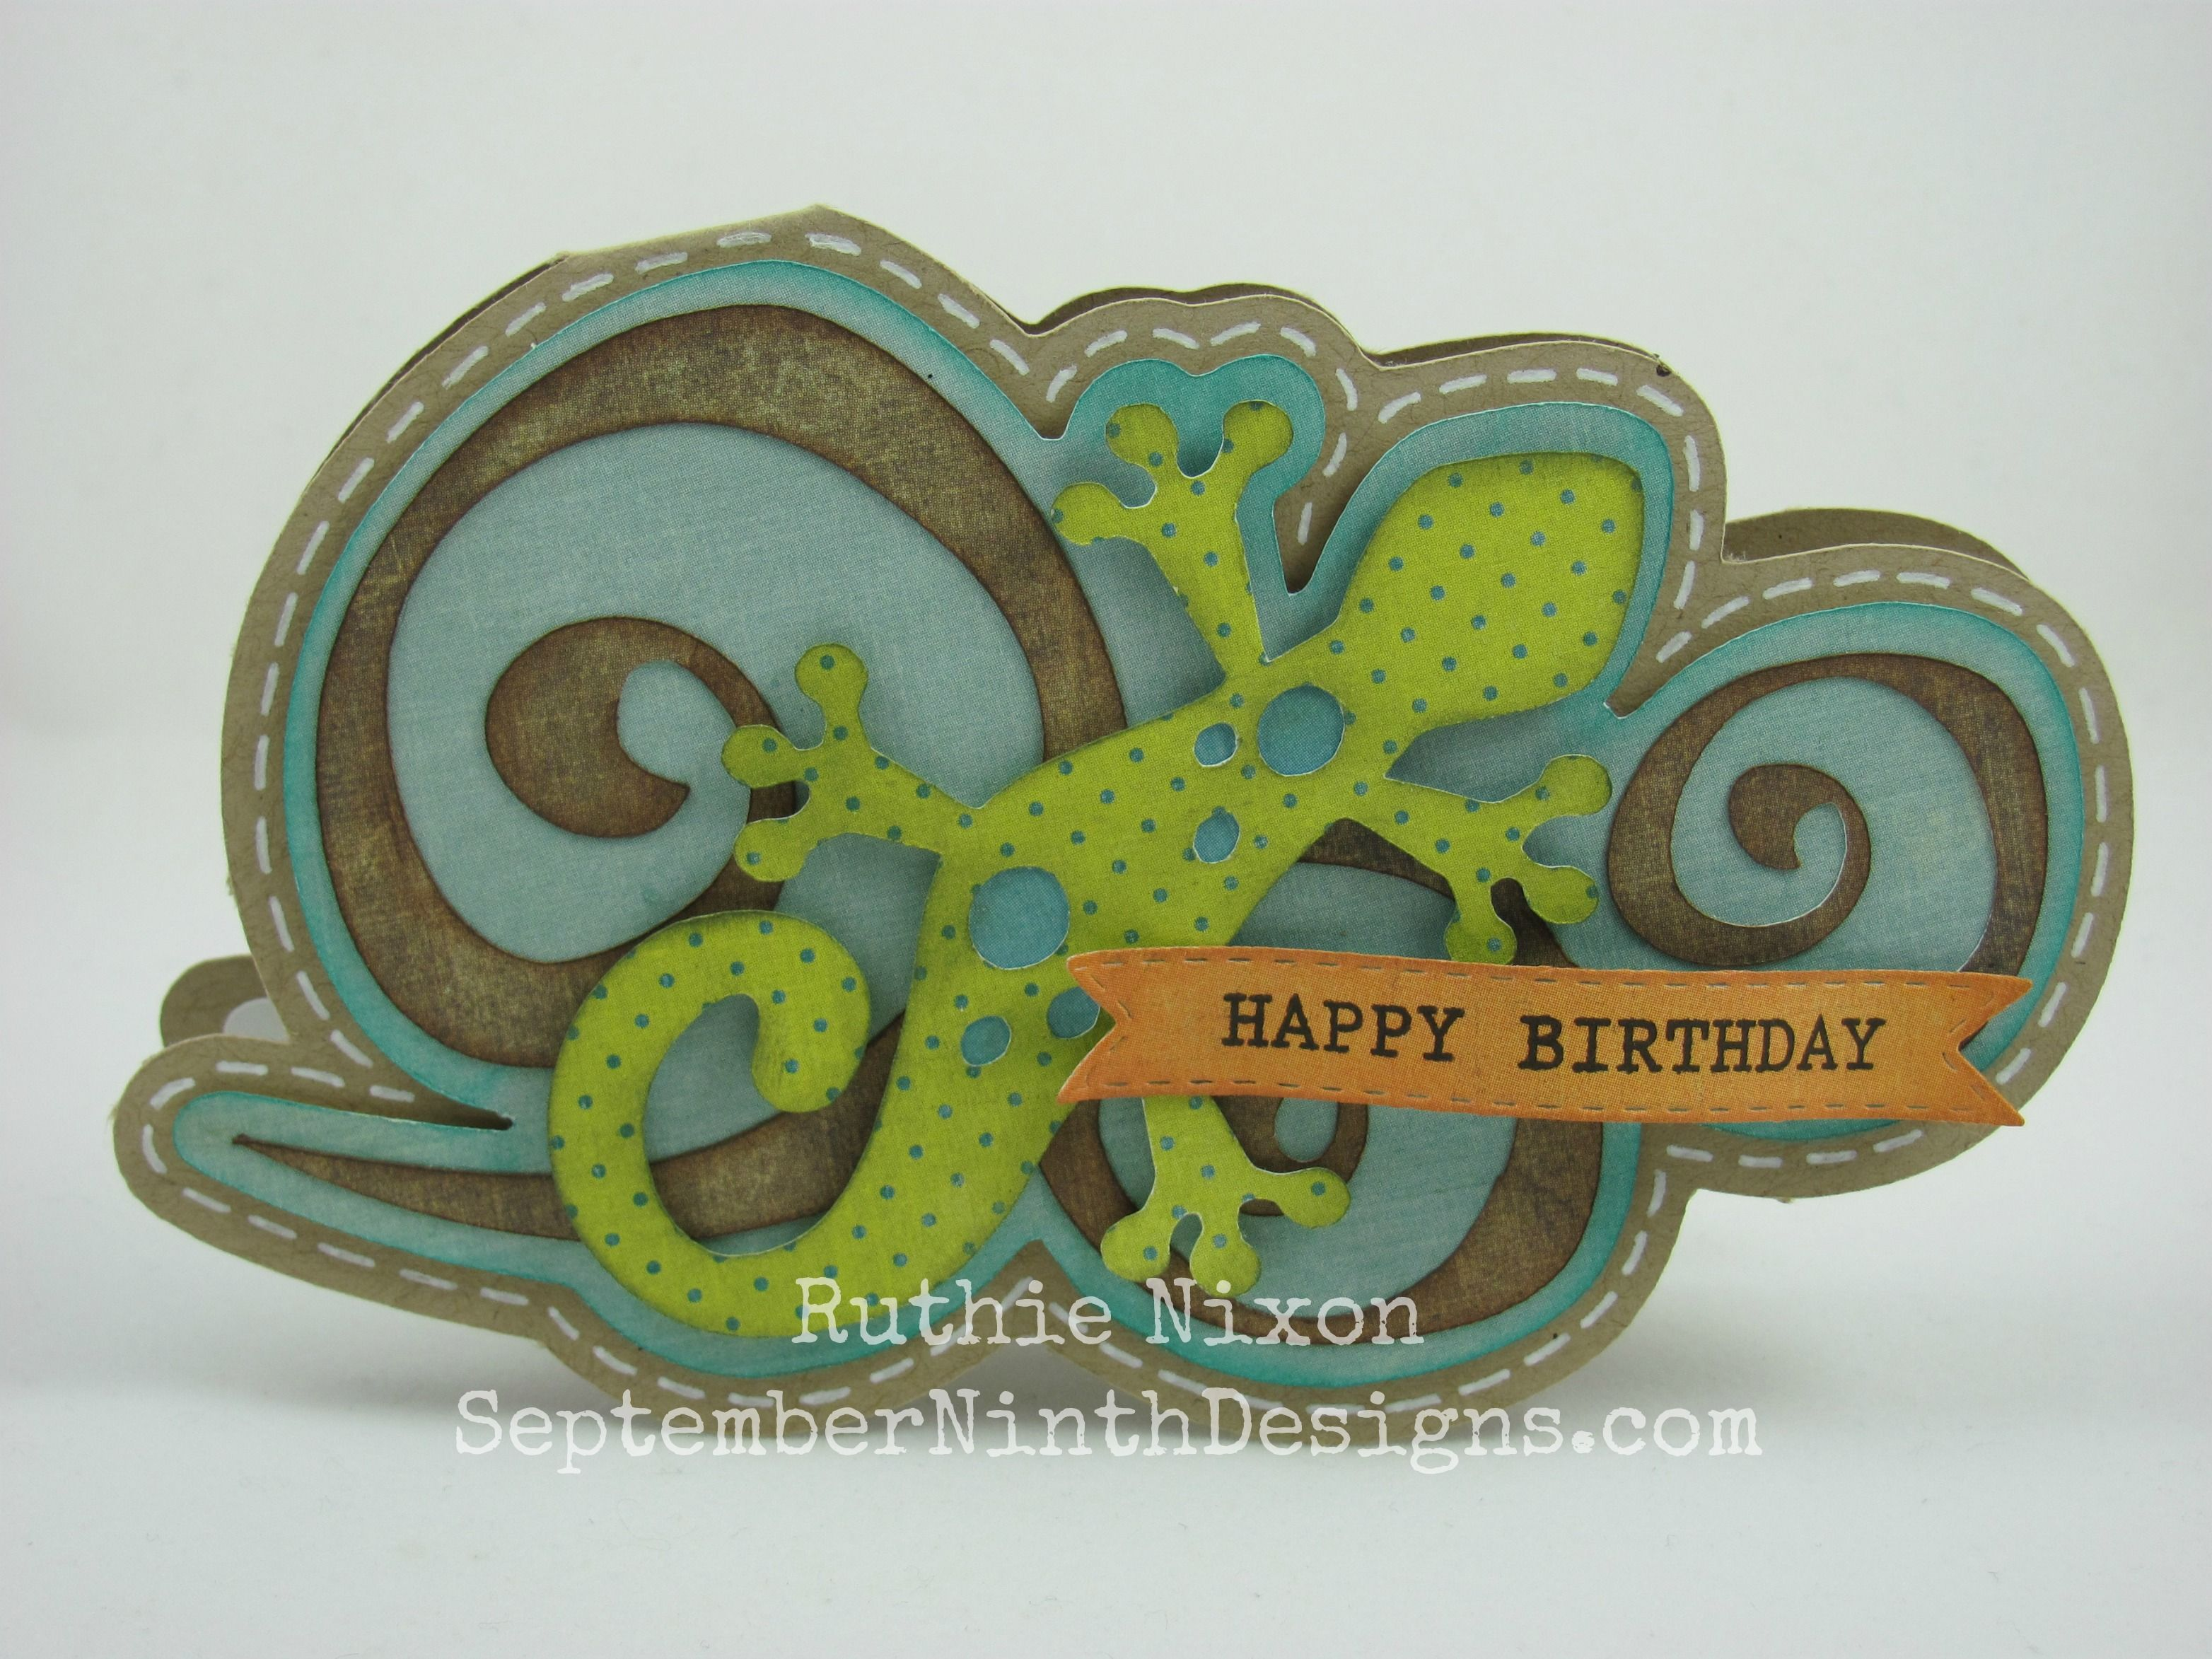 cool shaped card